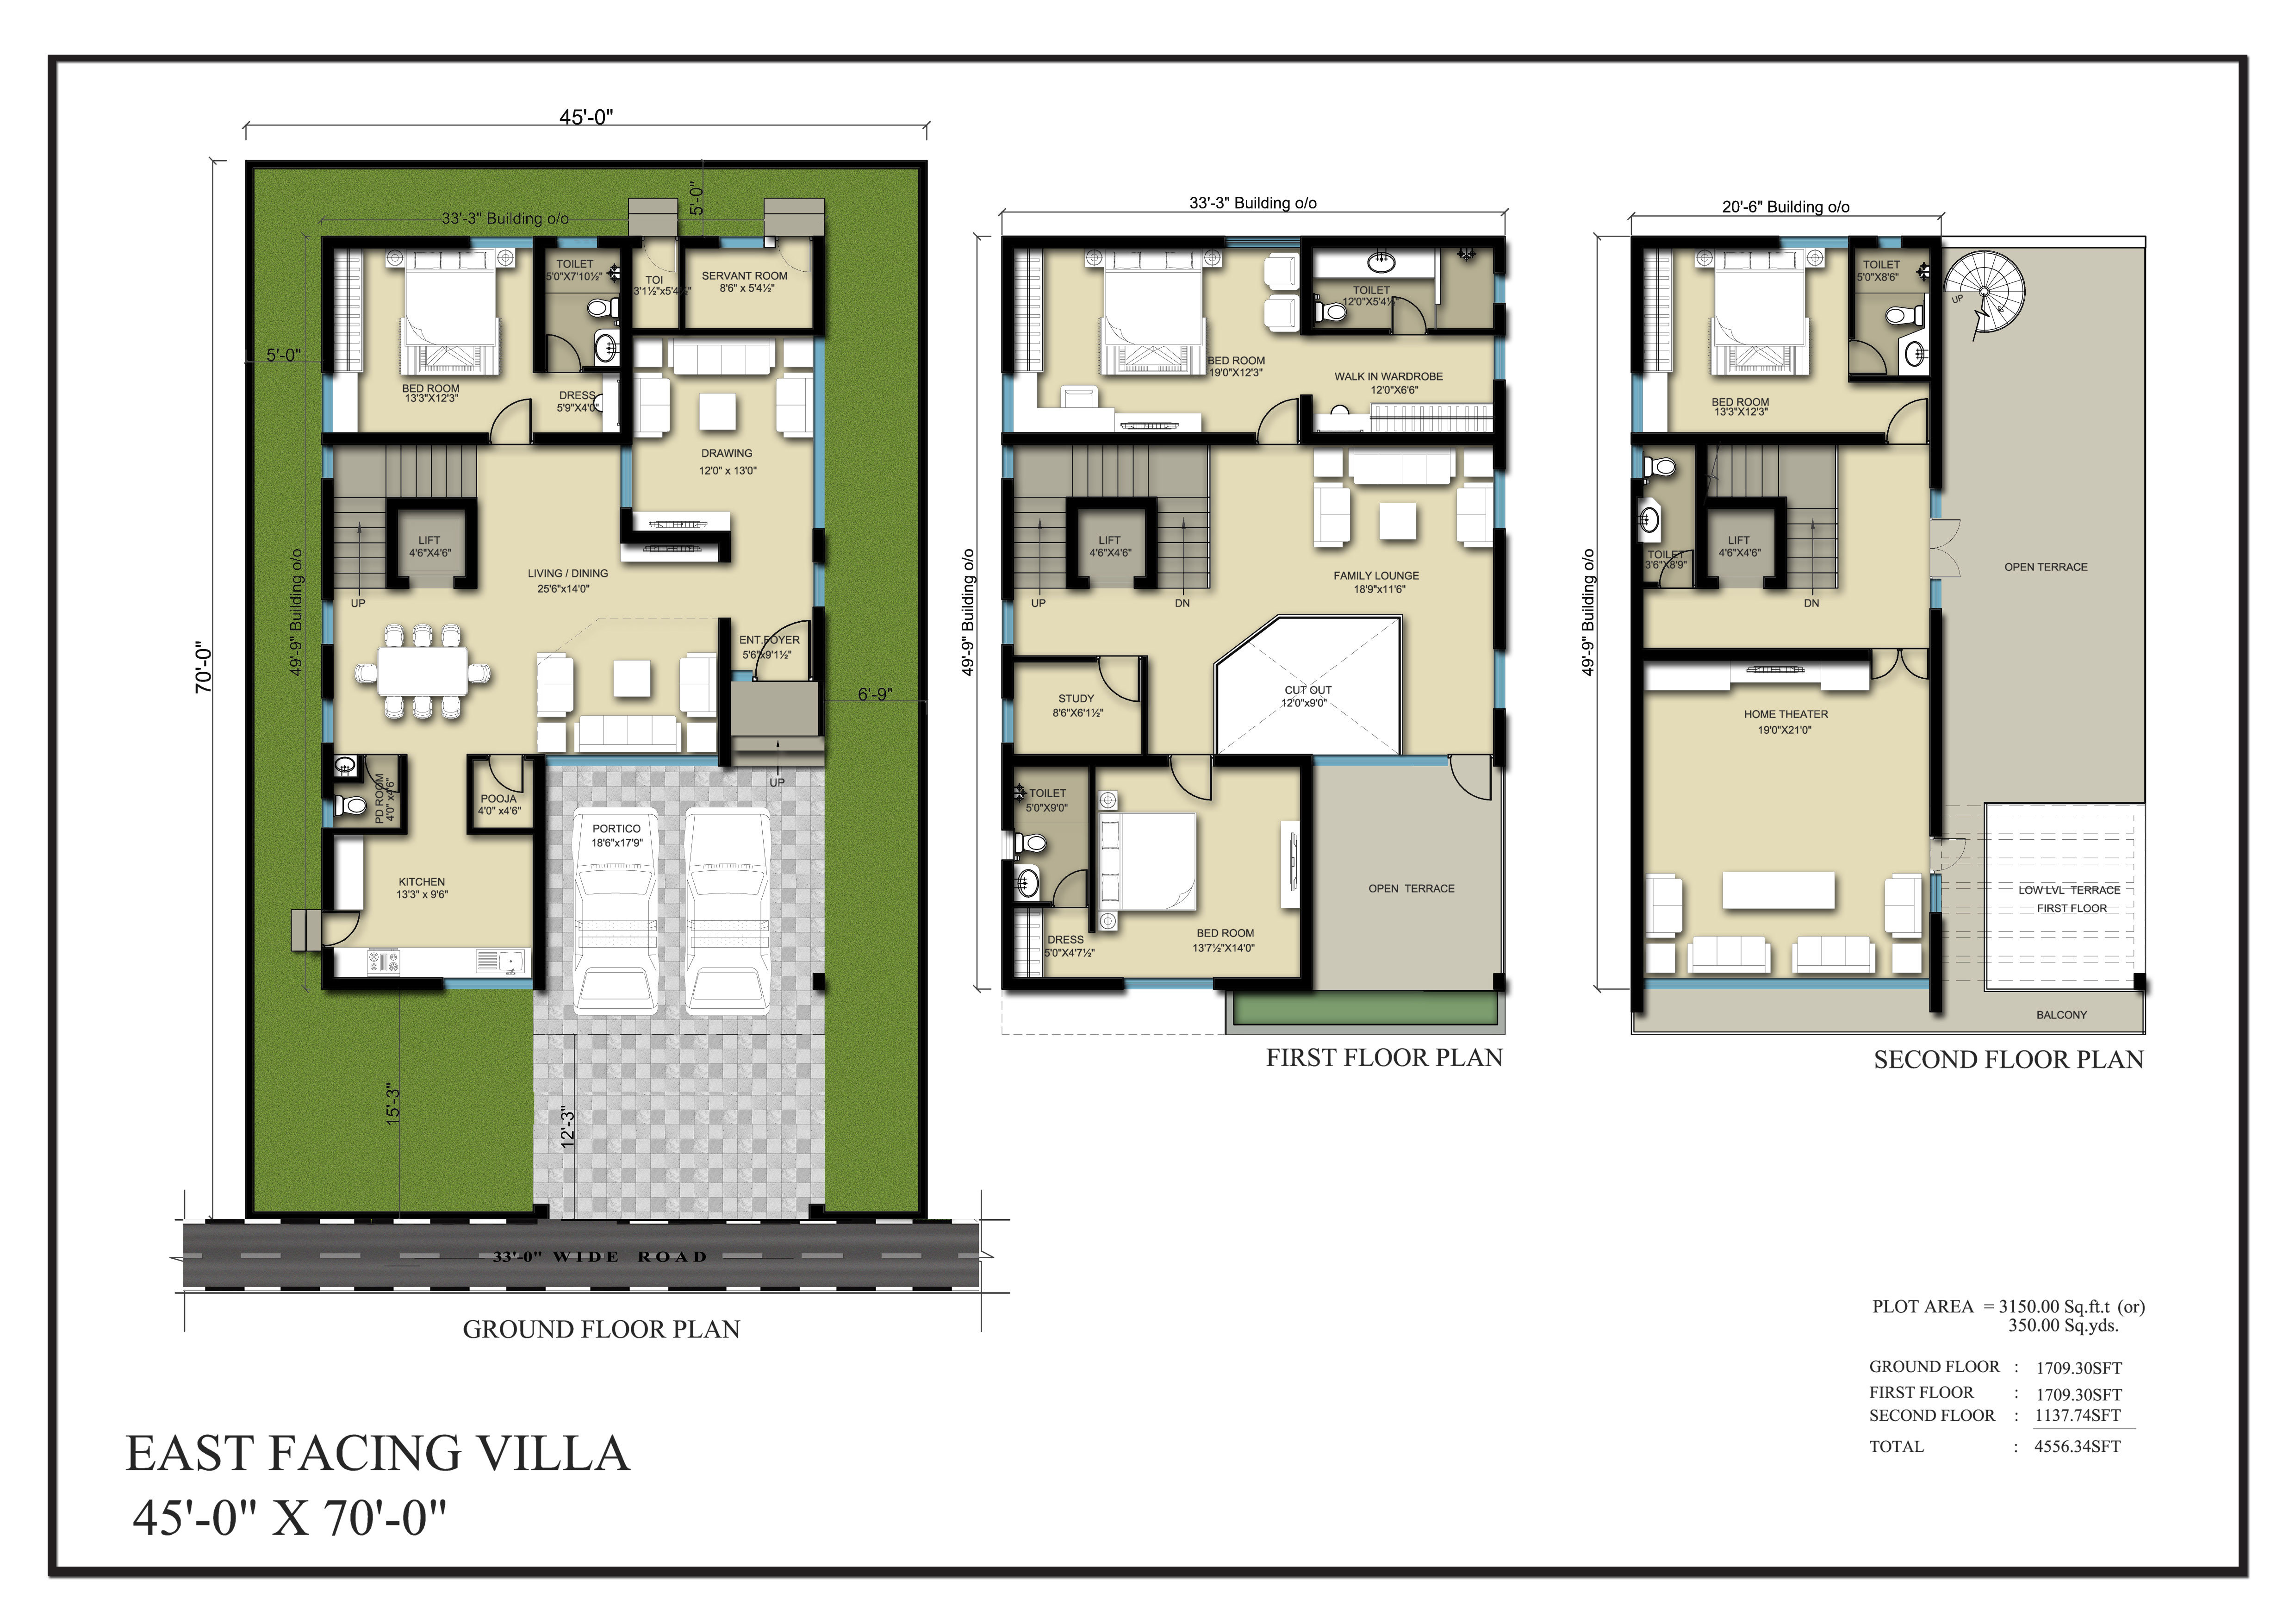 Vasantha City floorplan 4566sqft east facing